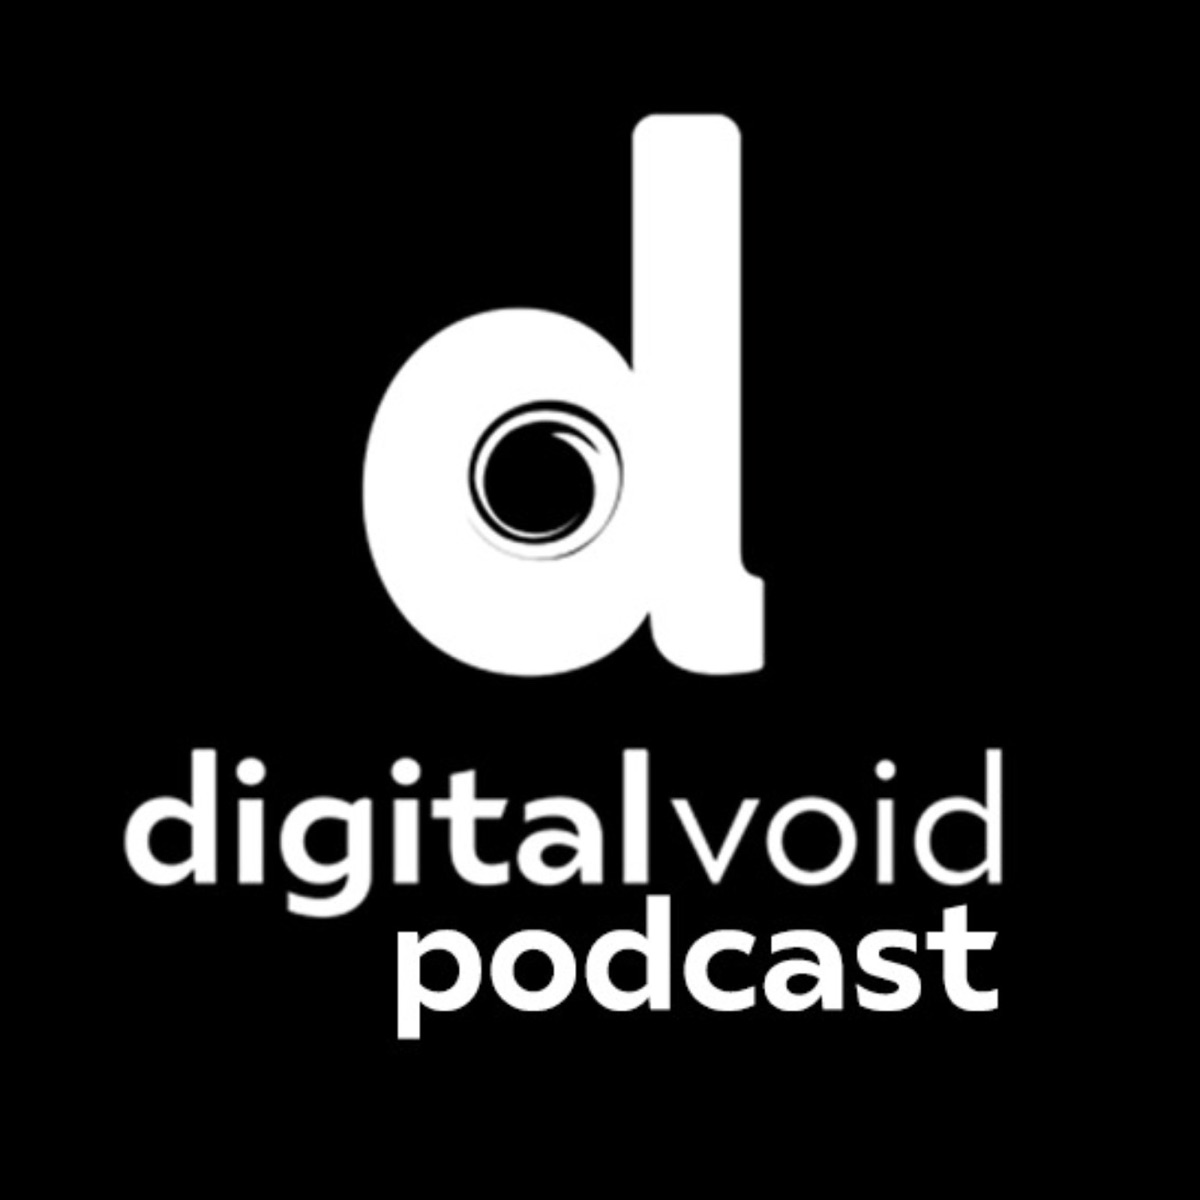 Digital Void Podcast – Podcast – Podtail